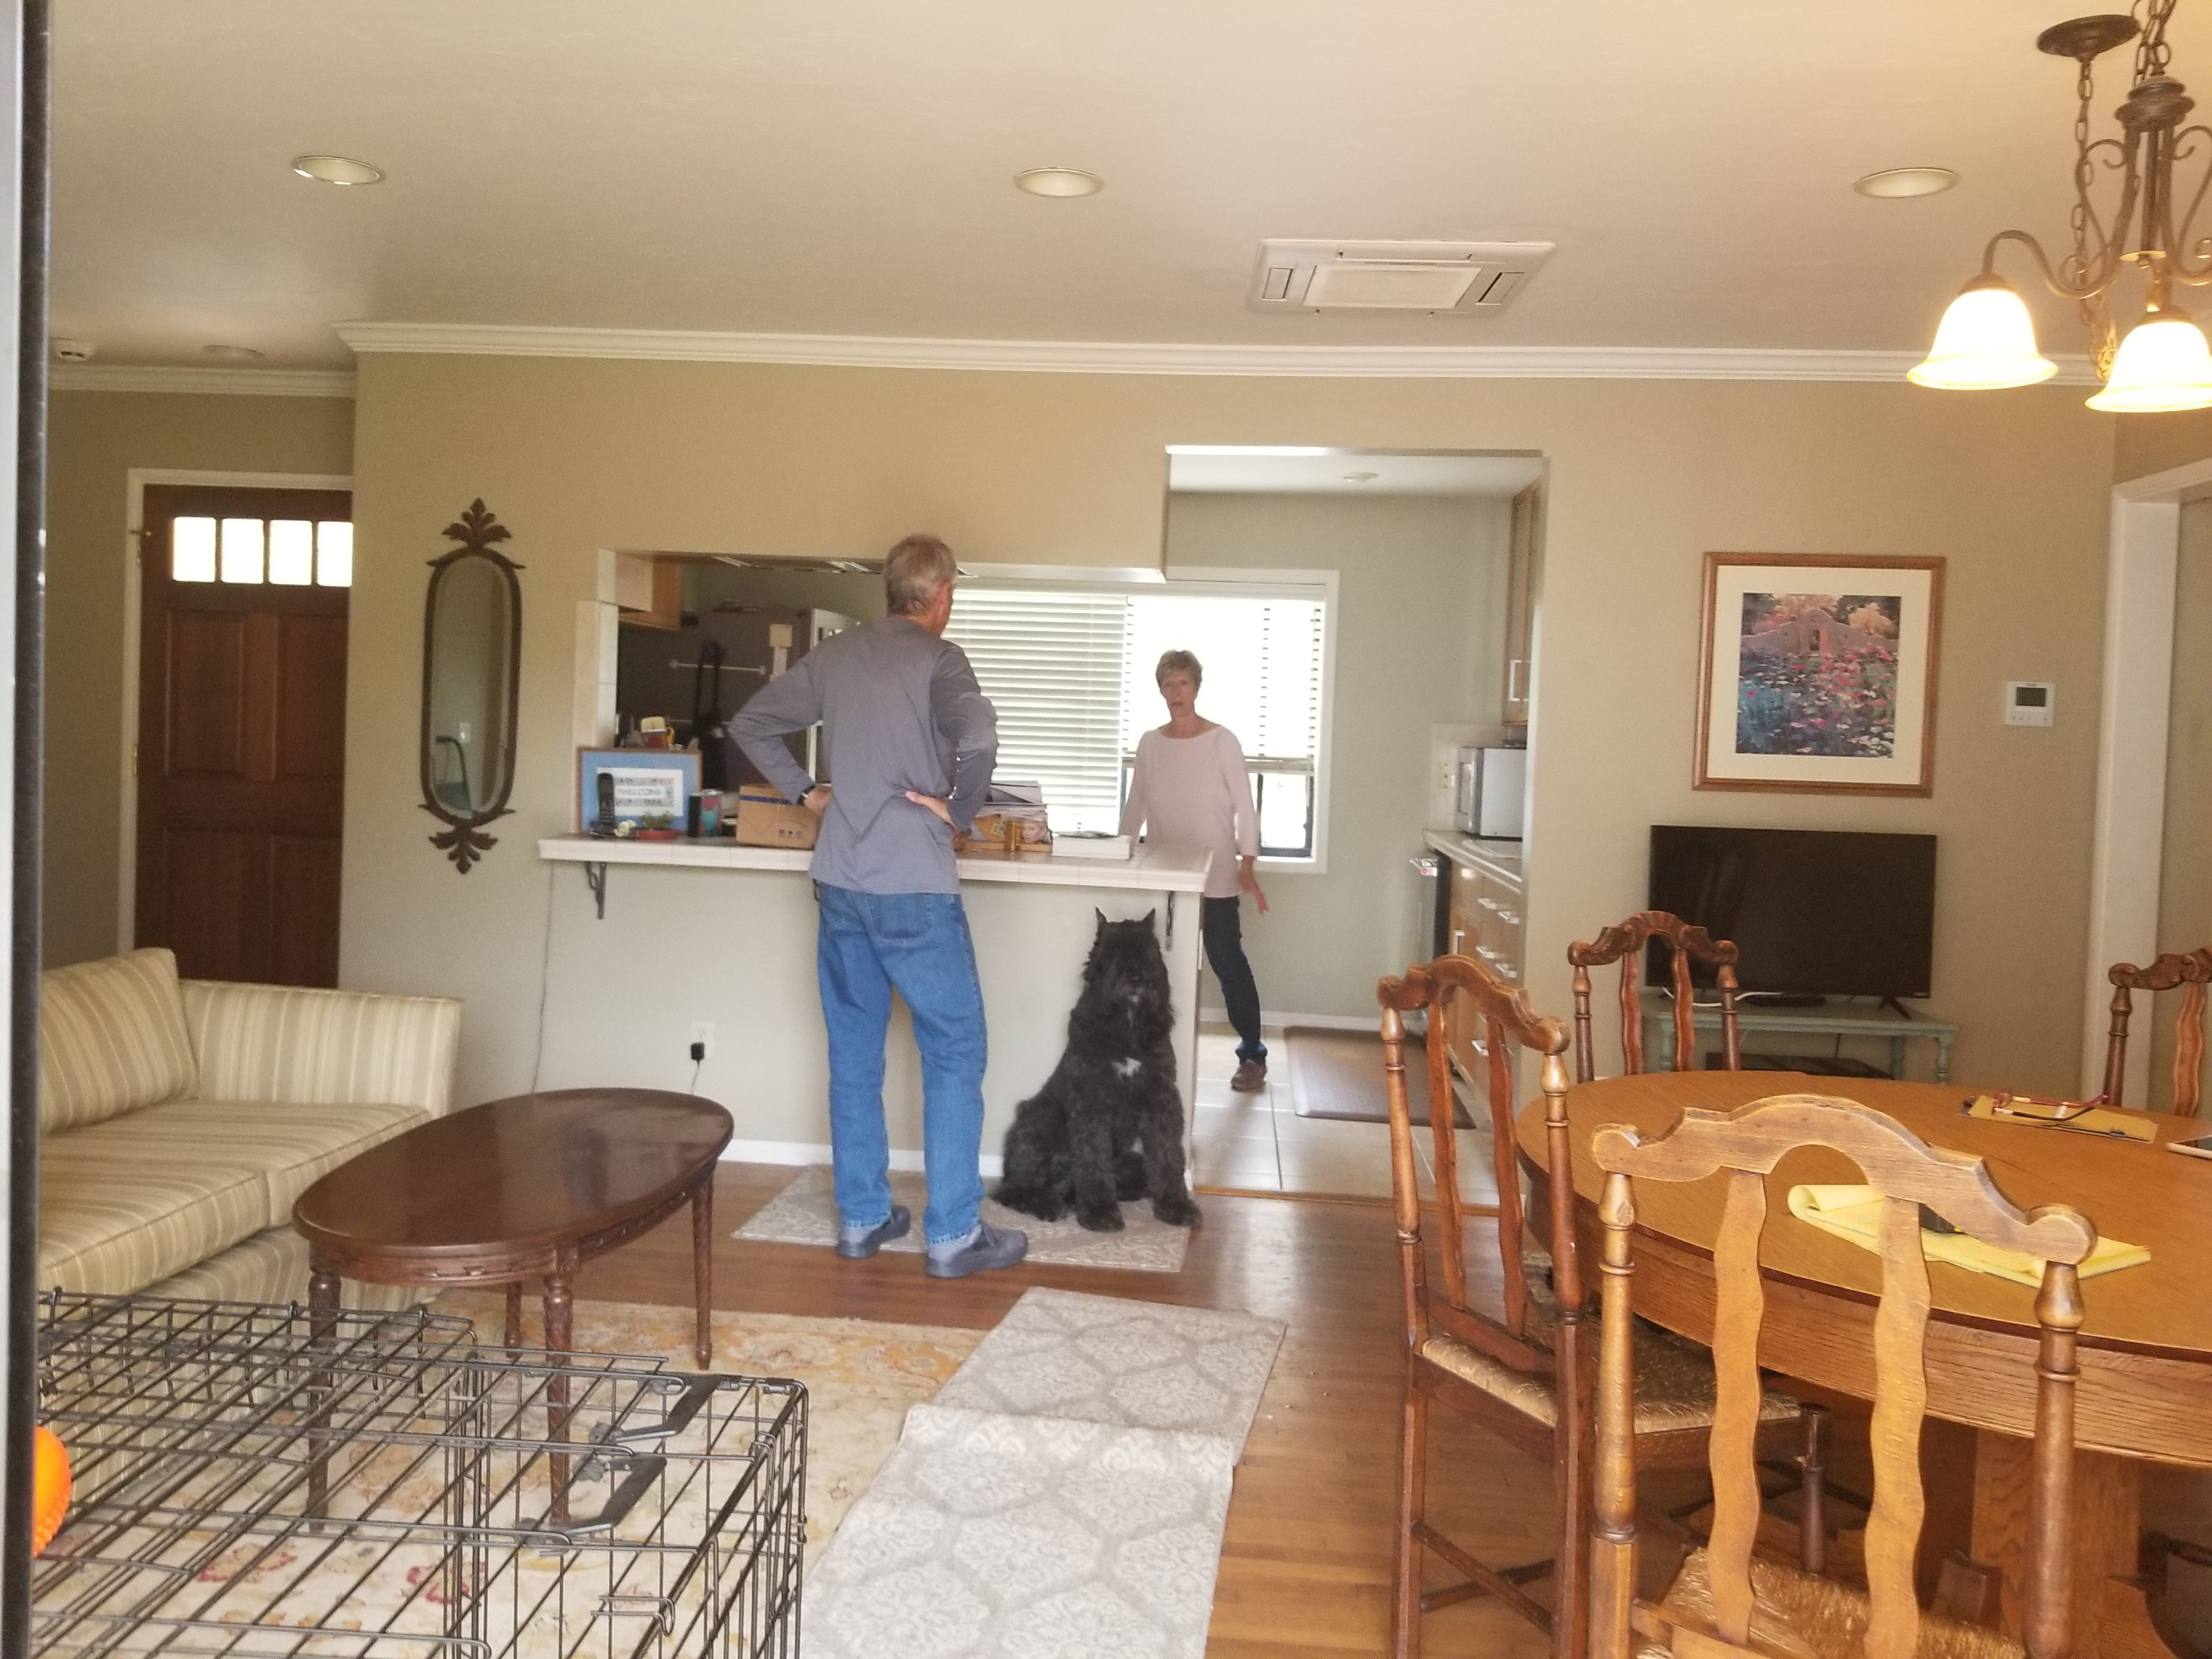 Point Loma kitchen relocation within the existing space!